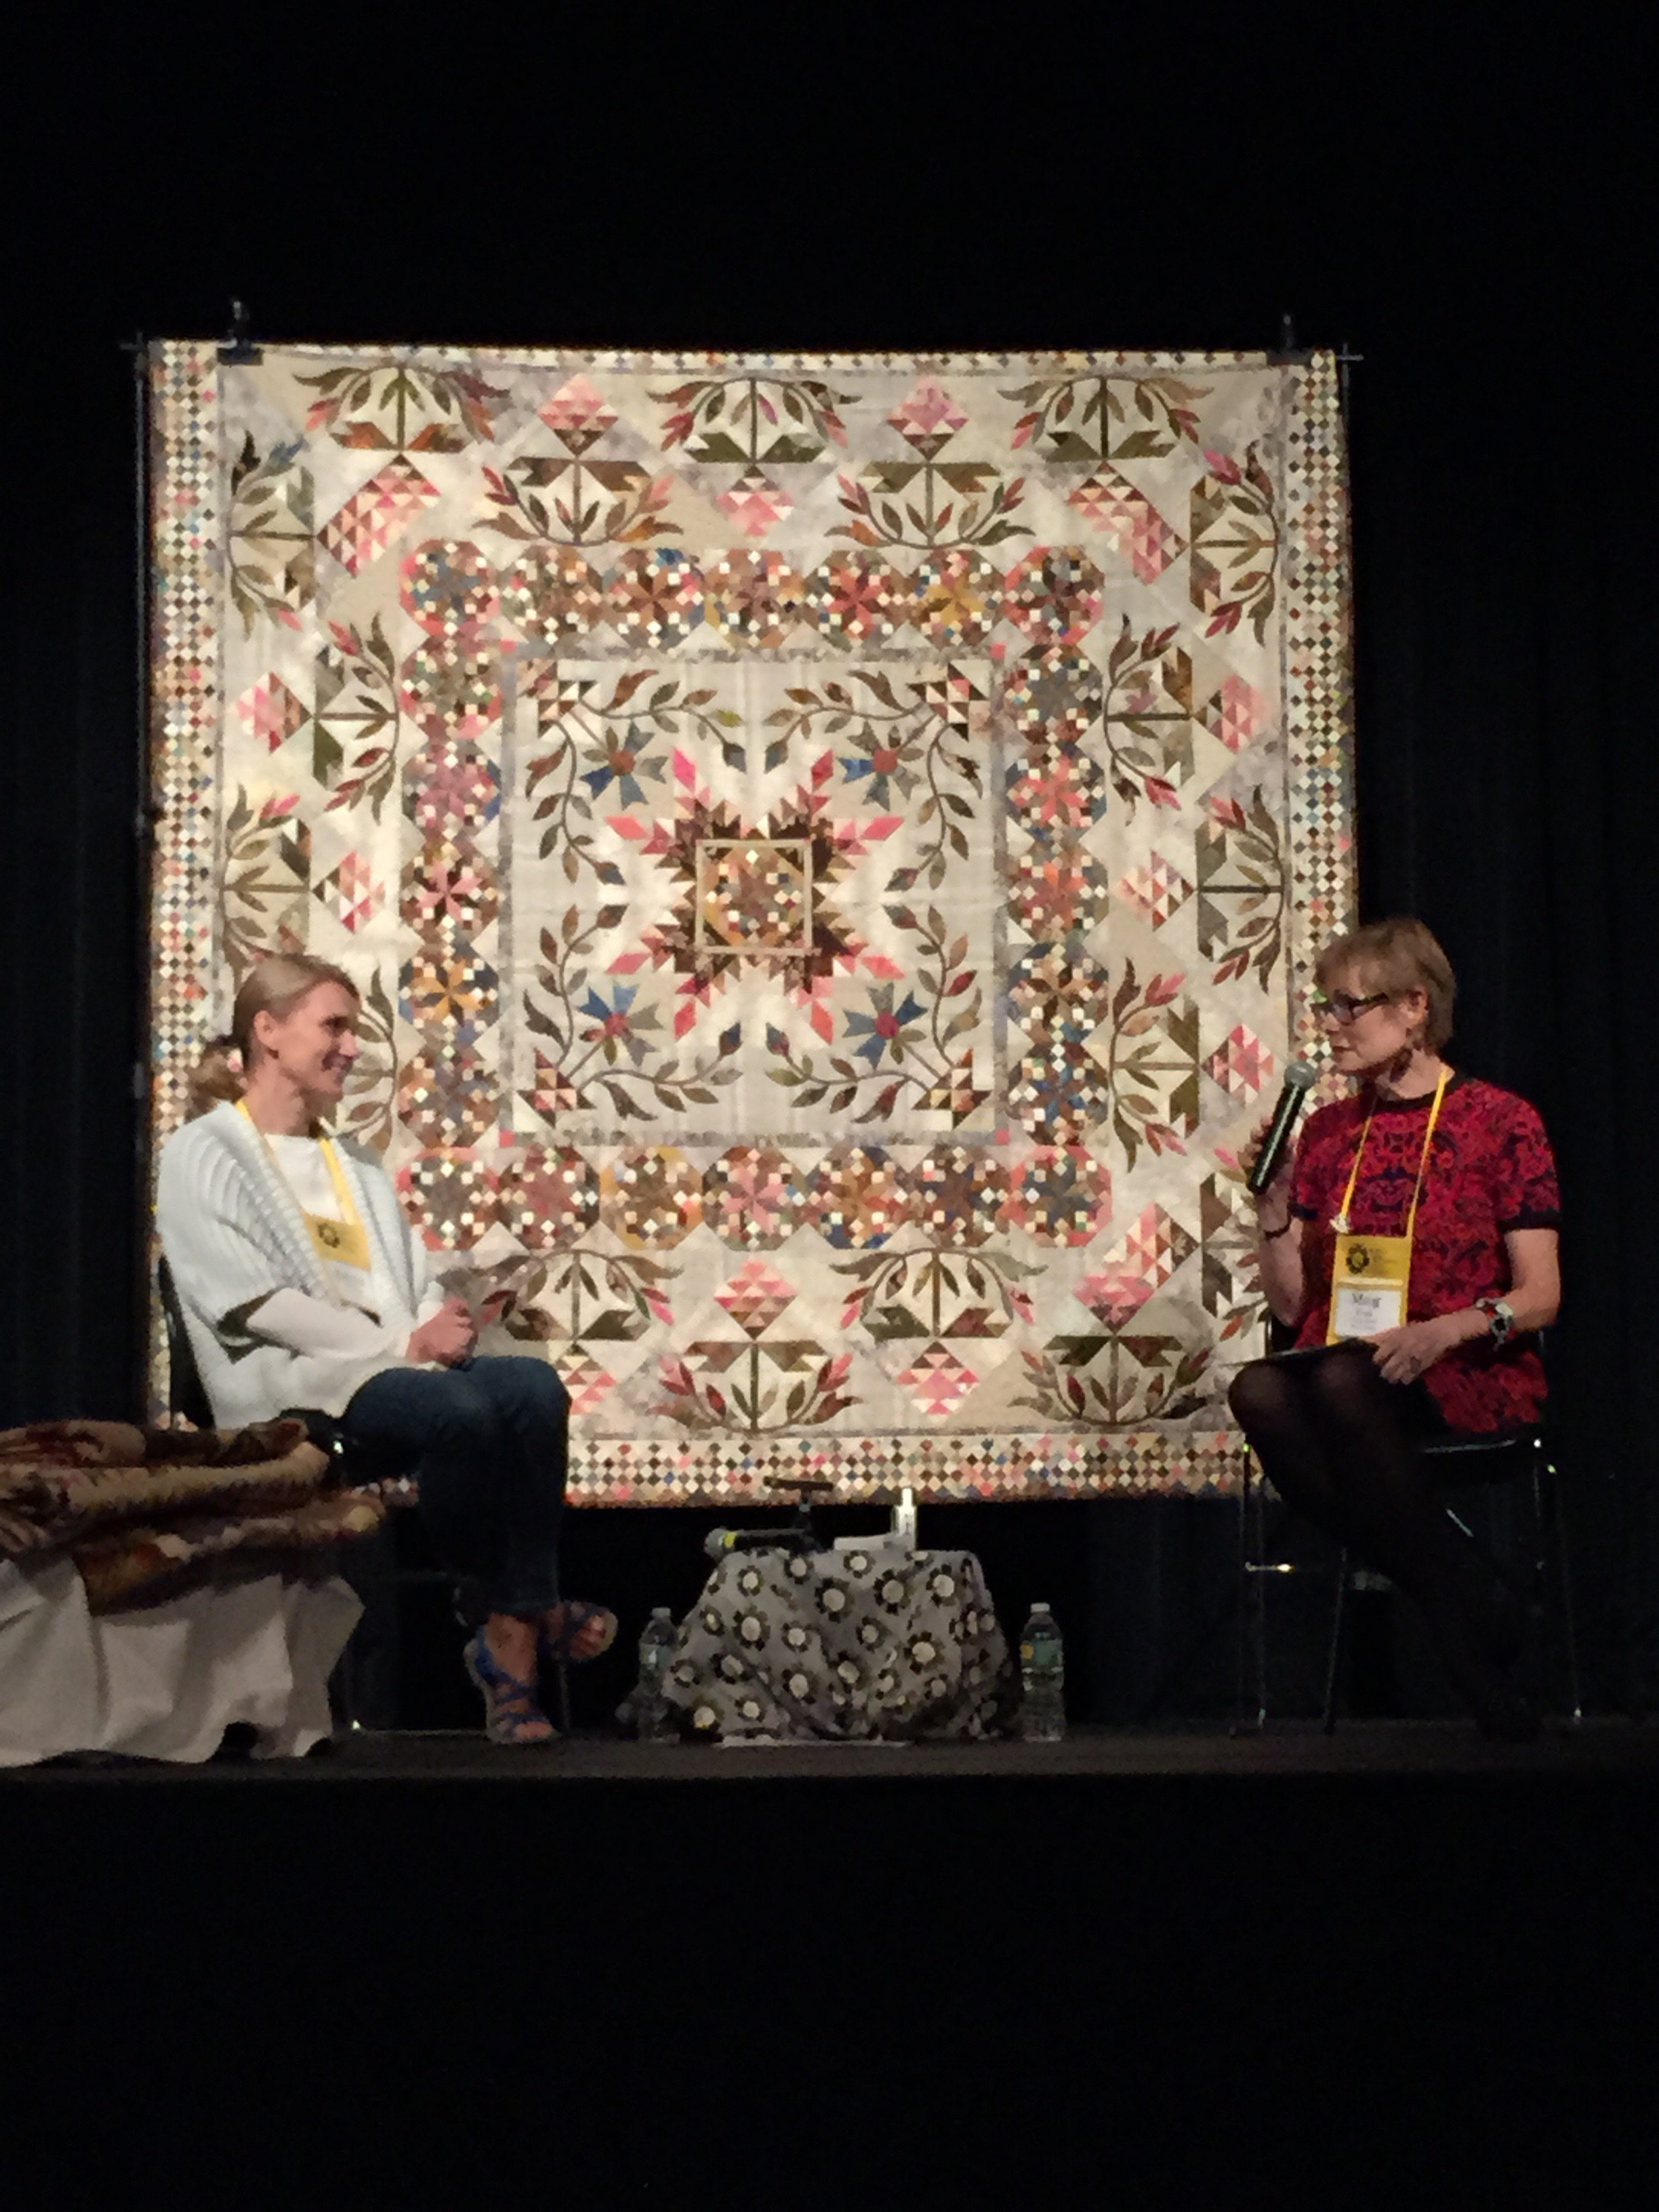 Quilt Alliance President Emeritus Meg Cox conducts a Quilters S.O.S. -- Save Our Stories interview w